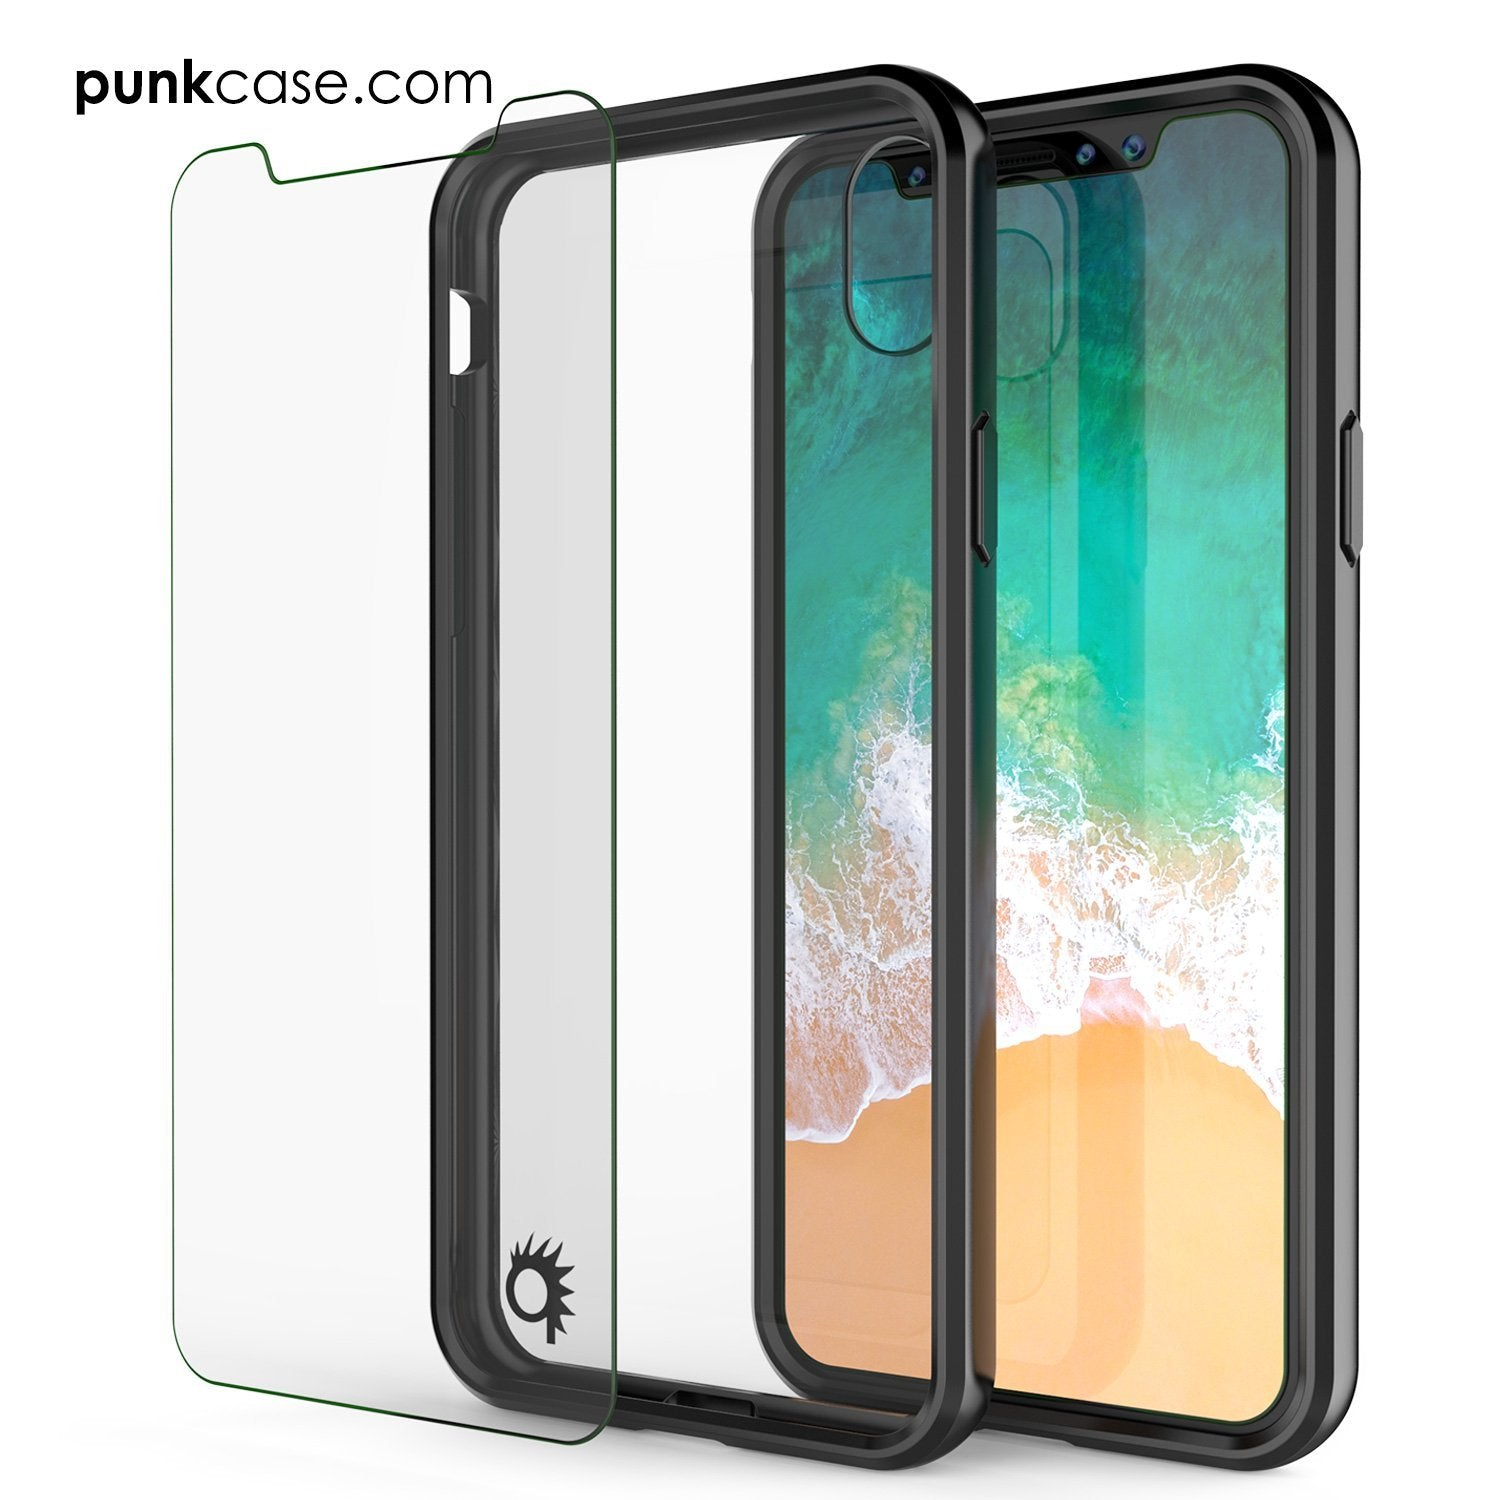 iPhone X Case, PUNKcase [LUCID 2.0 Series] [Slim Fit] Armor Cover W/Integrated Anti-Shock System & Tempered Glass PUNKSHIELD Screen Protector [Black]